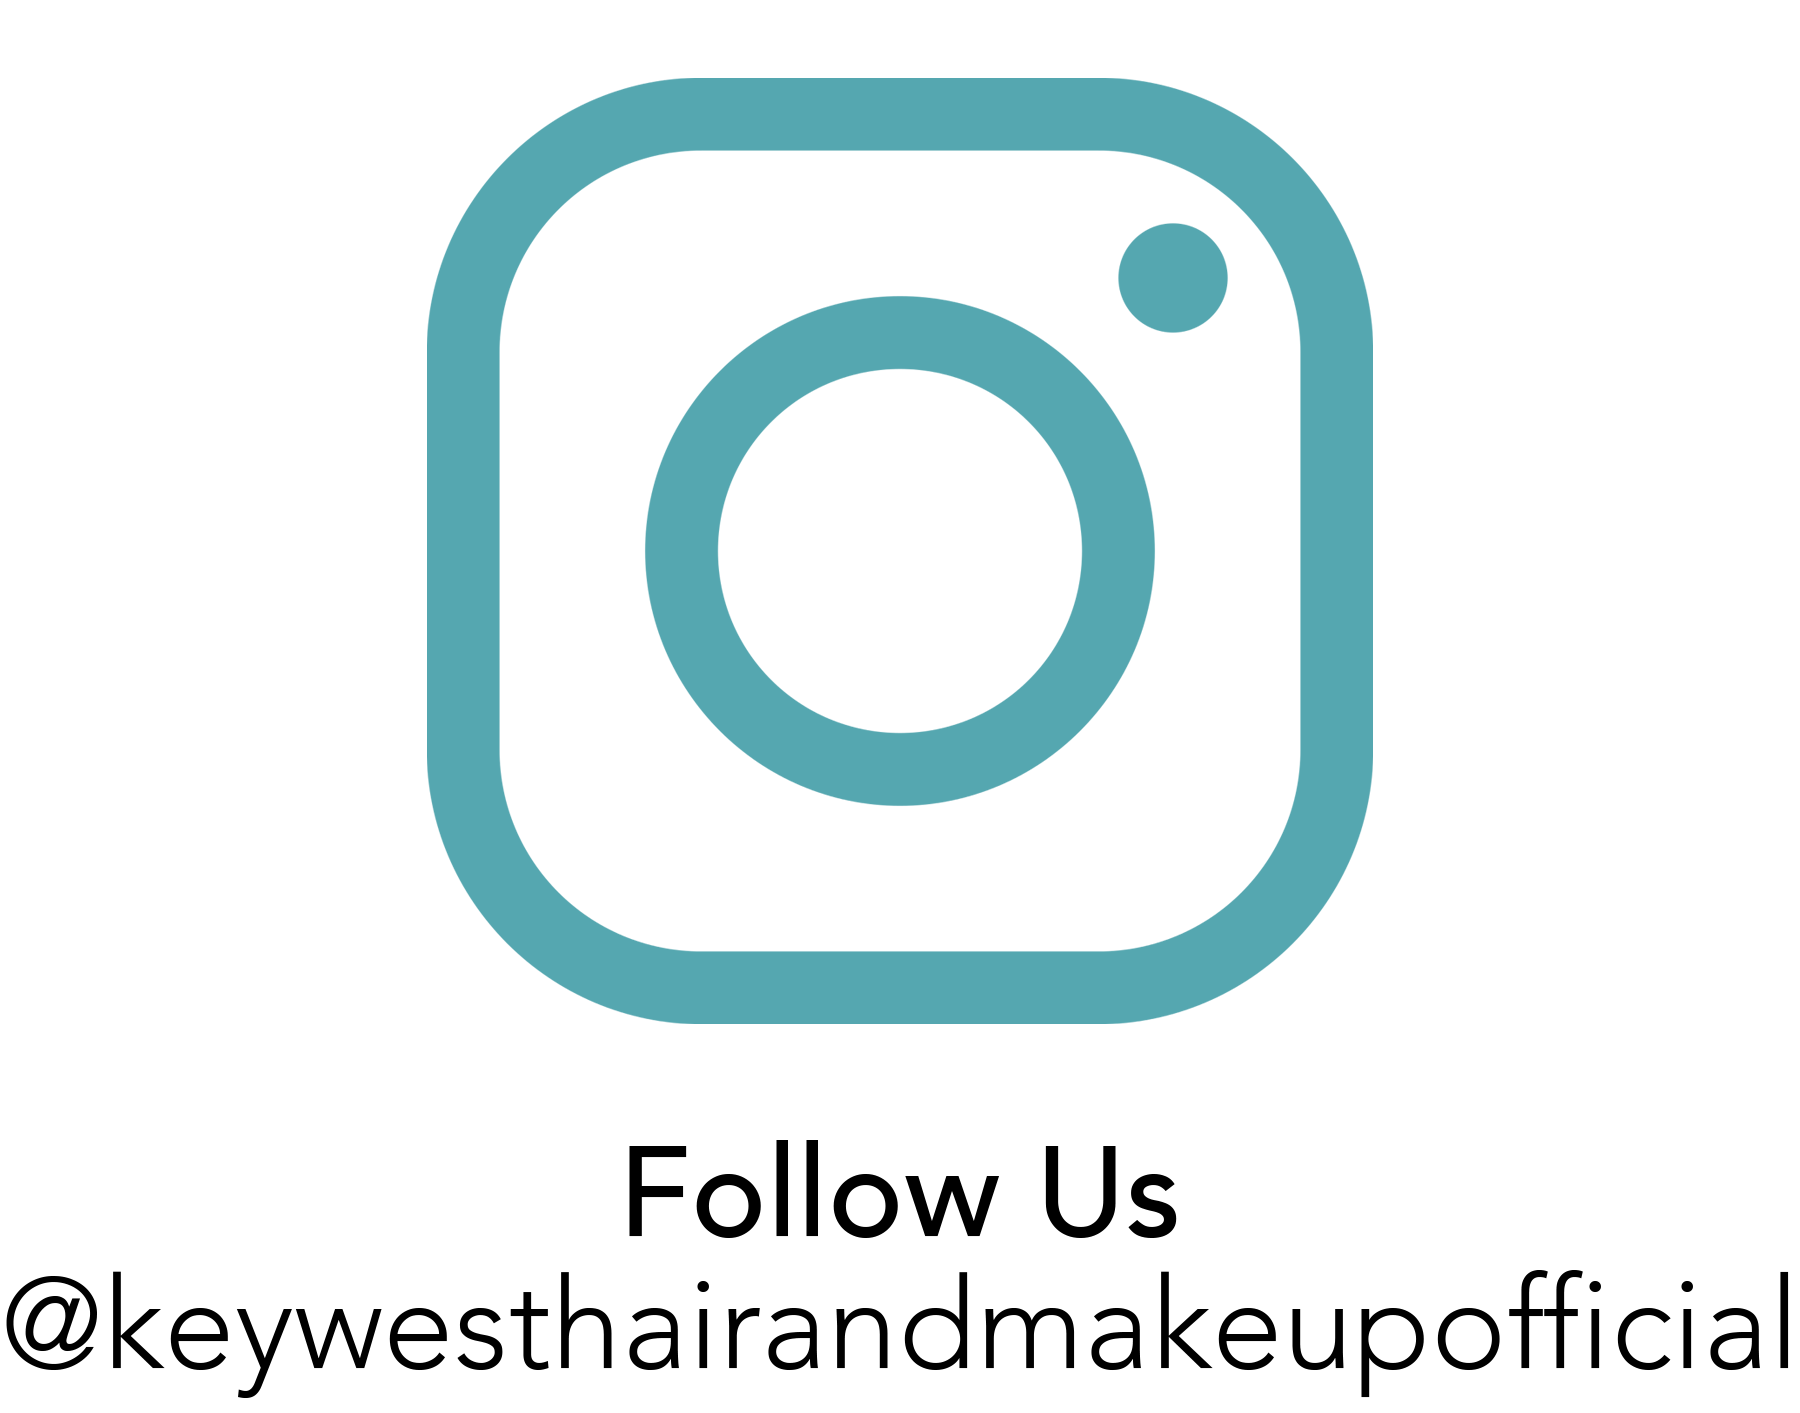 Image of Instagram logo. Follow us at KeyWestHairAndMakeupOfficial account.